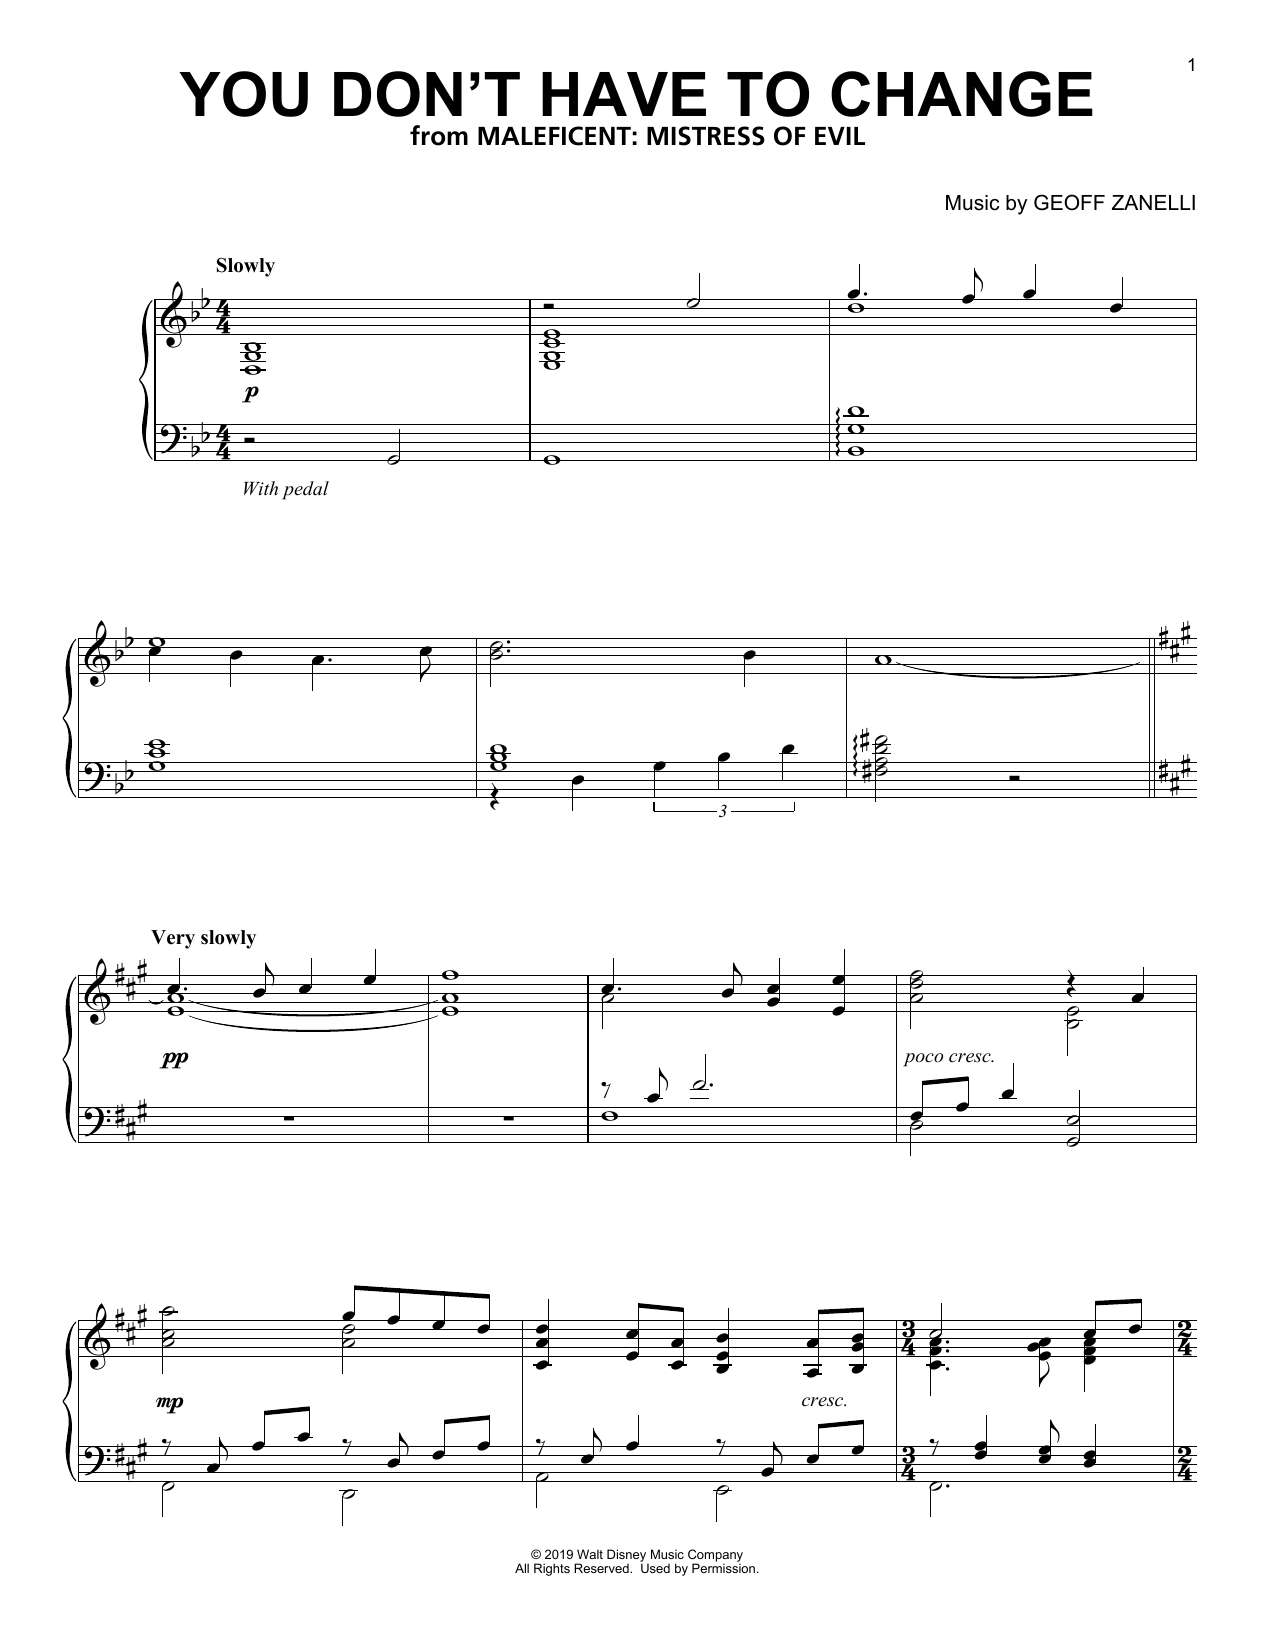 You Don't Have To Change (from Disney's Maleficent: Mistress of Evil) (Piano Solo)